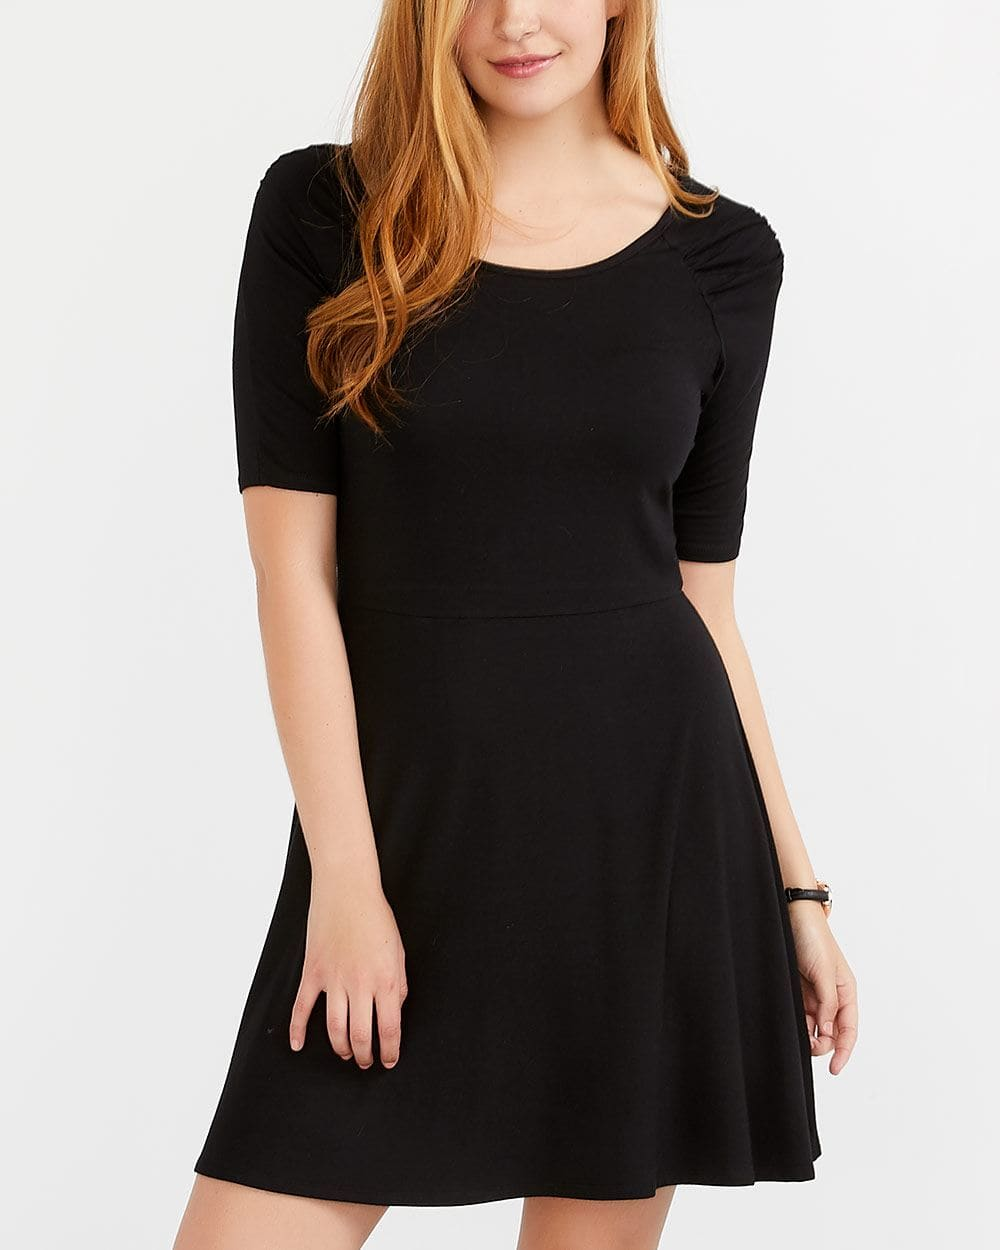 Ruched Raglan ¾ Sleeve Dress